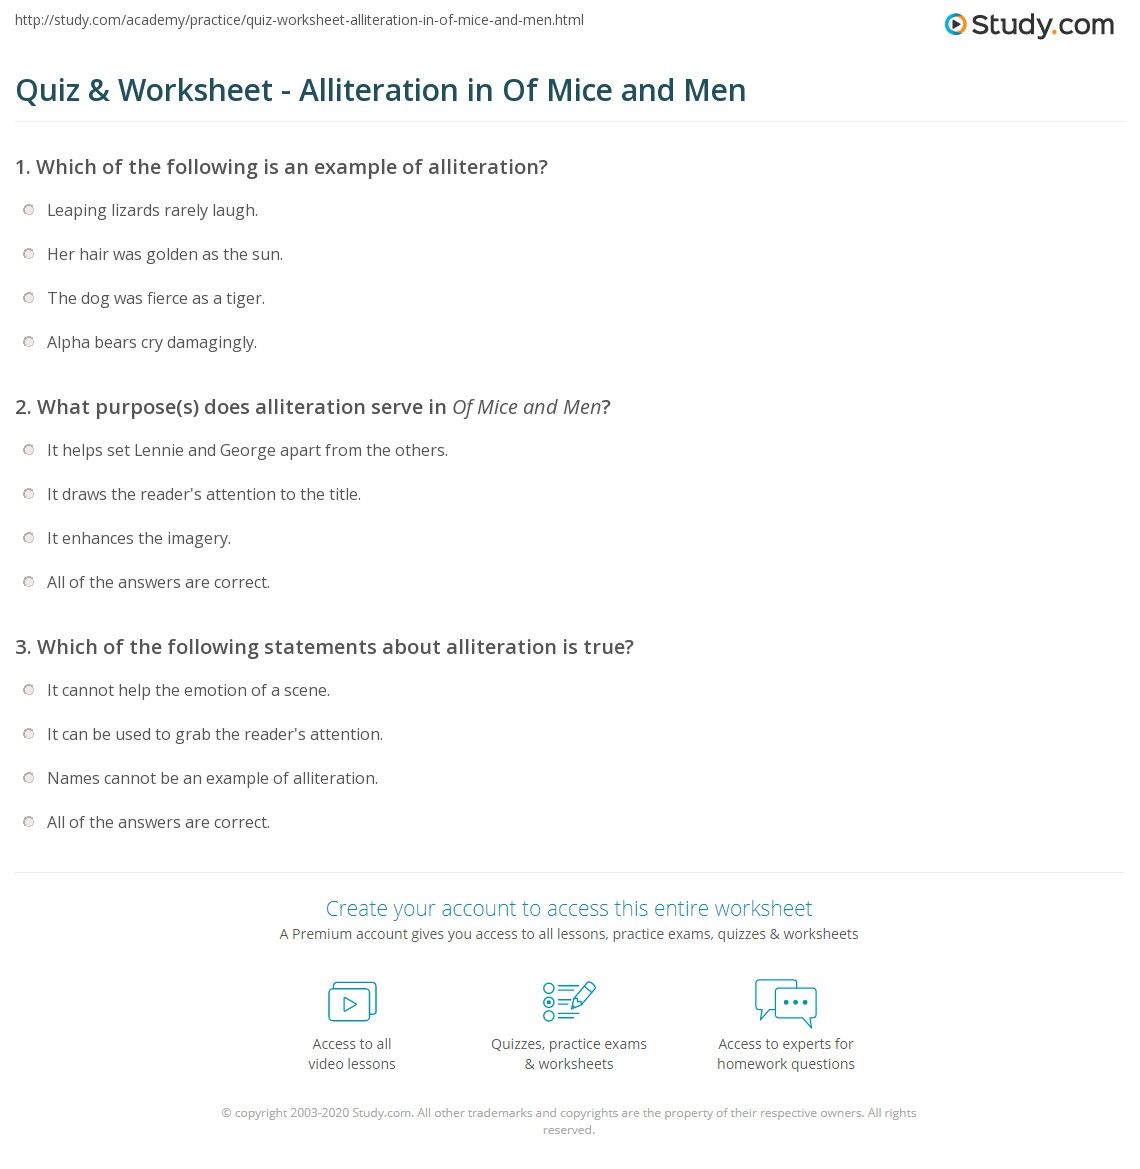 quiz worksheet alliteration in of mice and men com print alliteration in of mice and men worksheet